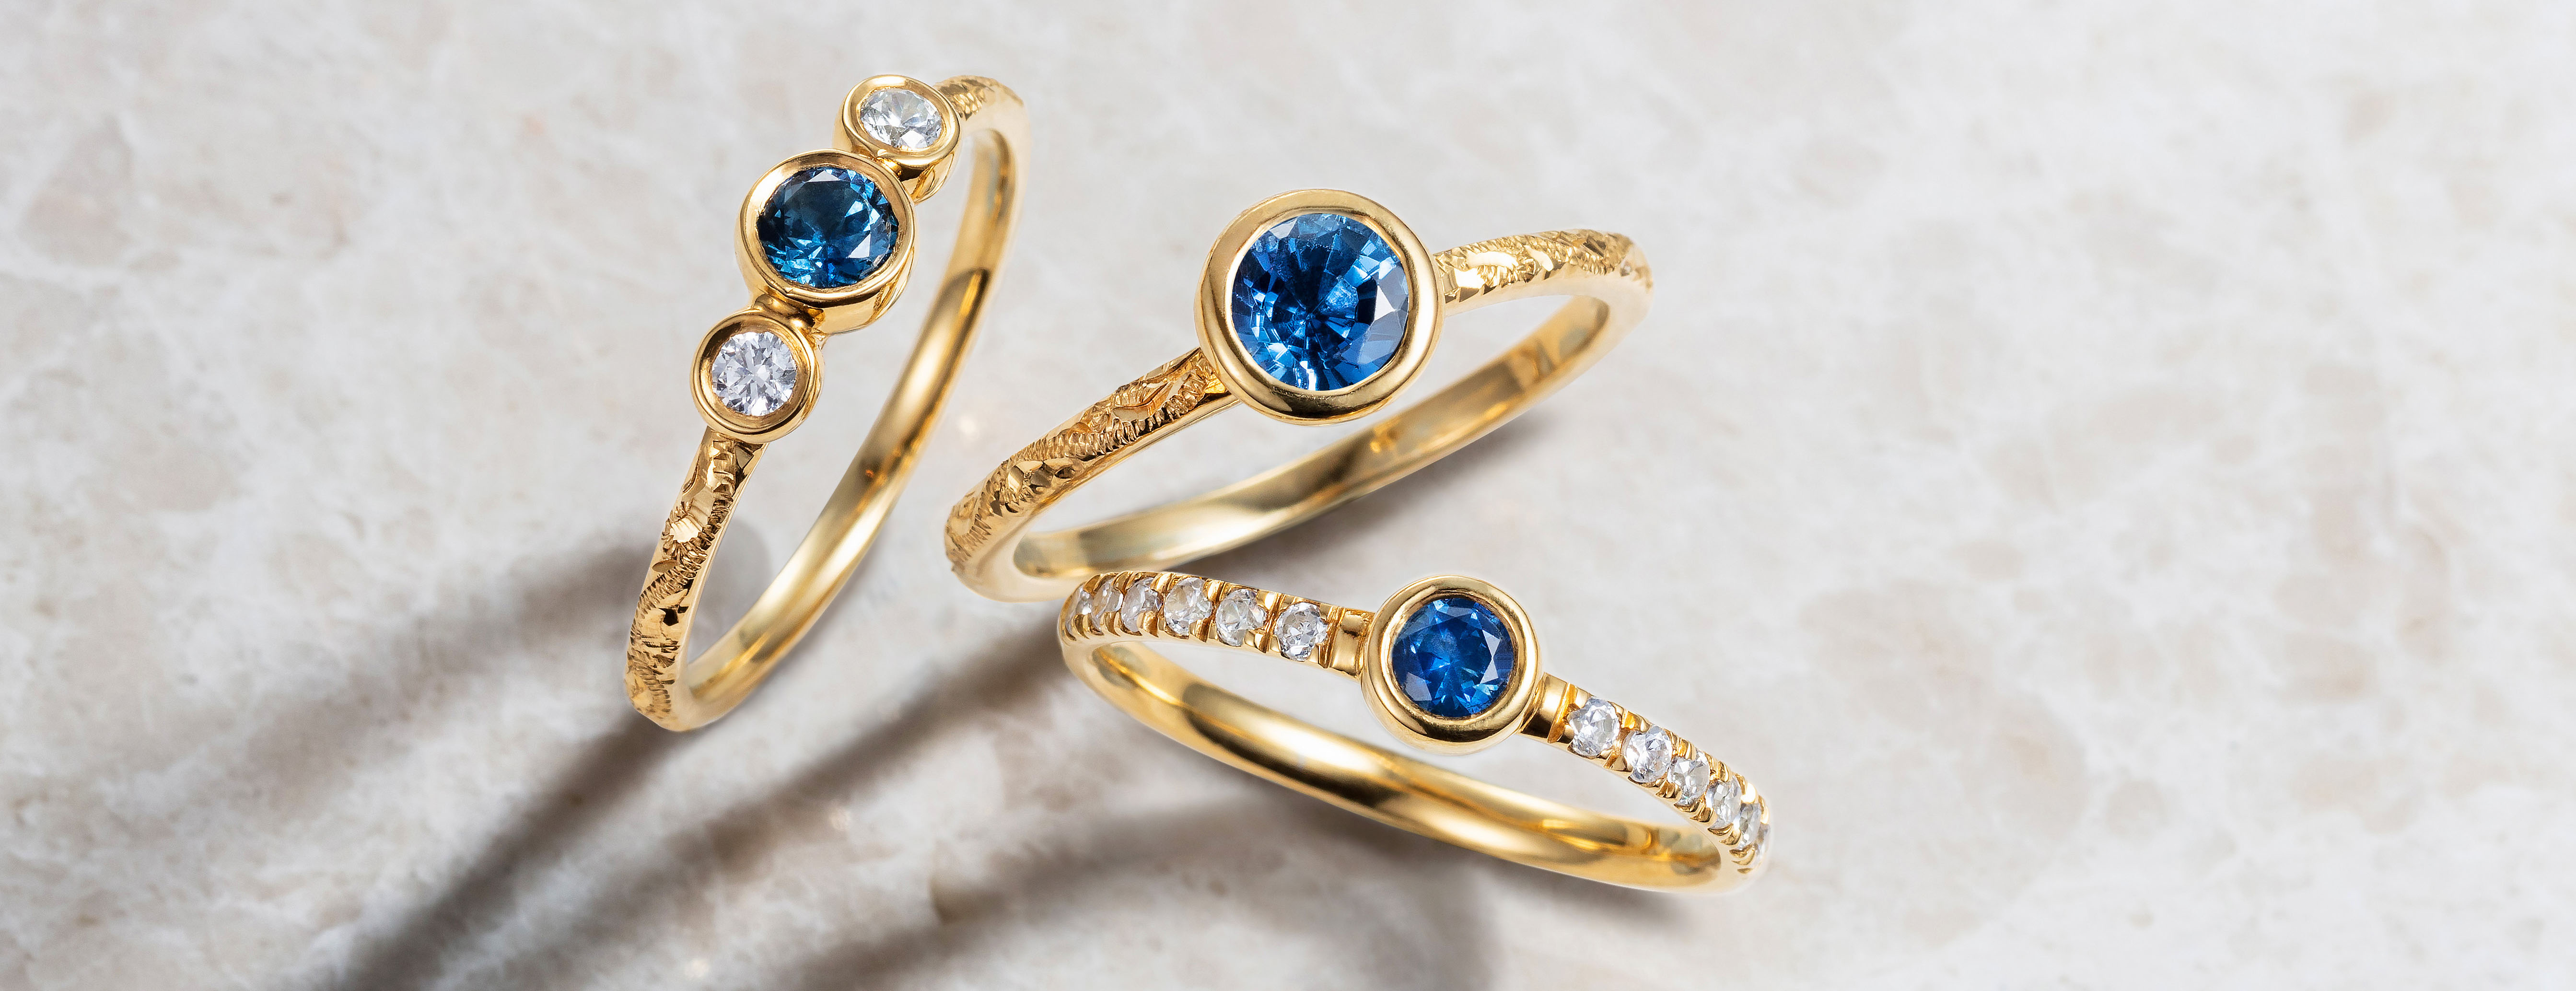 Arabel Lebrusan ethically sourced yellow gold, Canadian diamond and Malawi sapphire Hera engagement rings